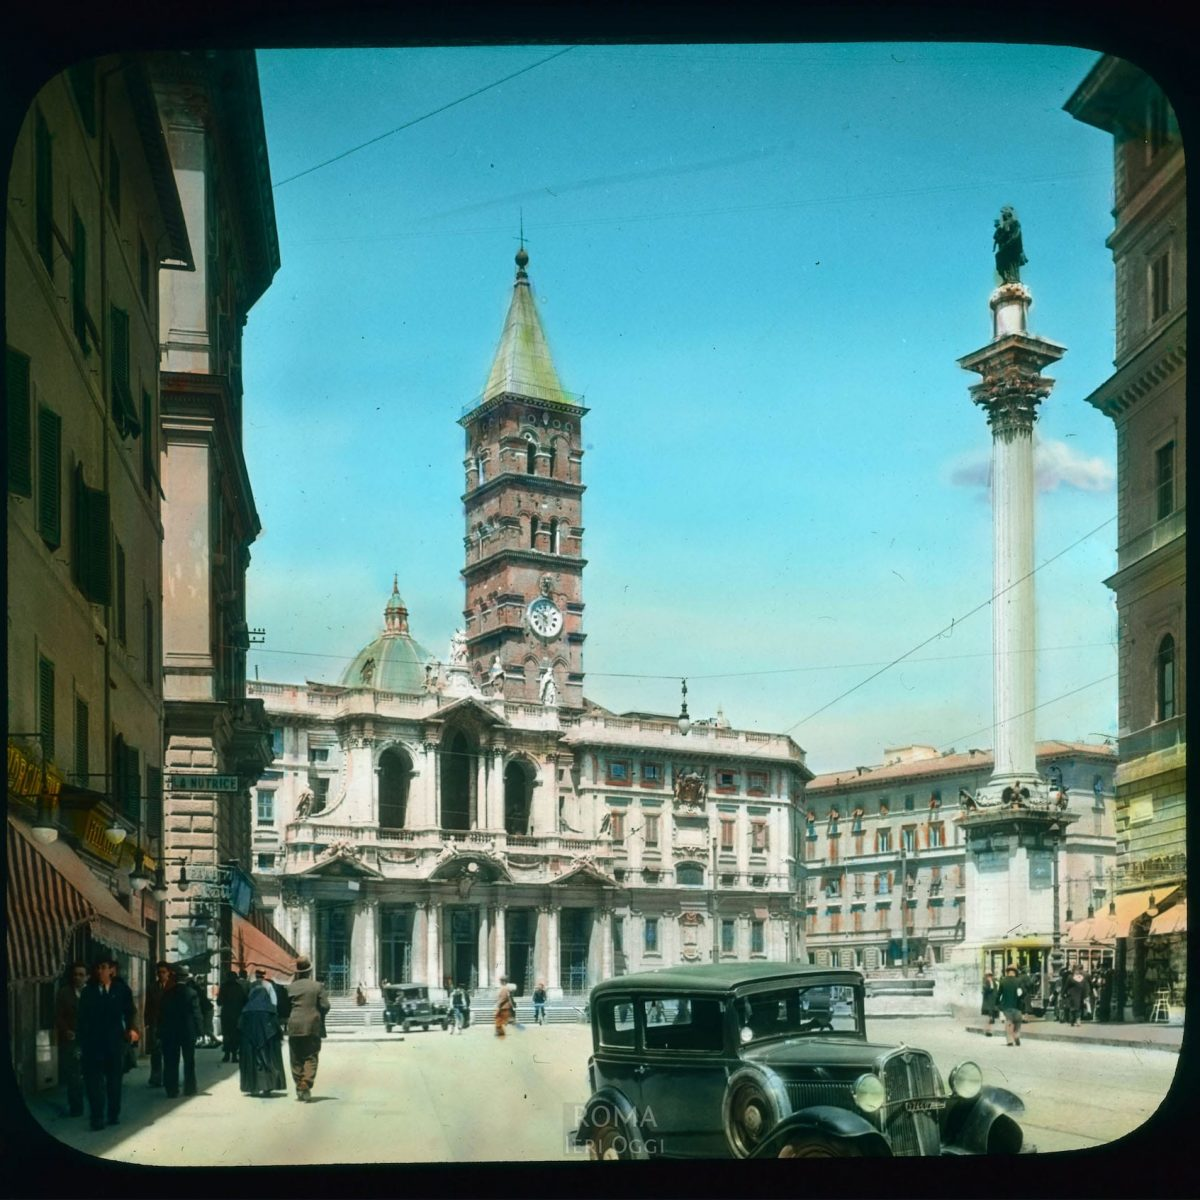 Rome. Piazza di Santa Maria Maggiore: view of the Marian Column by Maderno, and the basilica facade View in tinted lantern slide, ca. 1919-1938. The column dates from 1614, the facade from ca. 1743, the campanile from the 14th century.